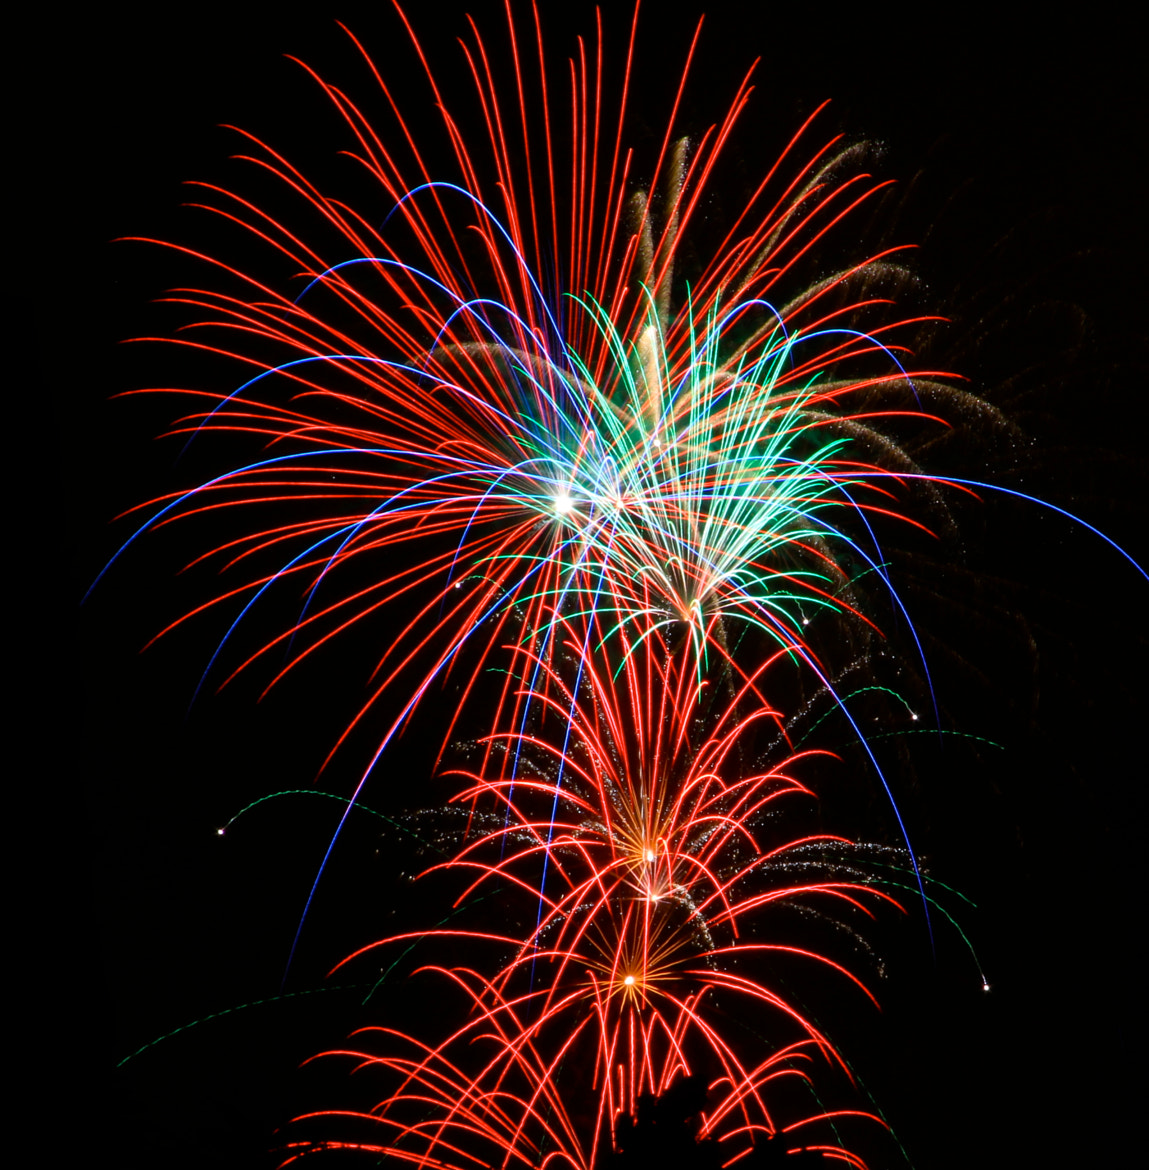 Photograph Fireworks 3 by Paul Marto on 500px